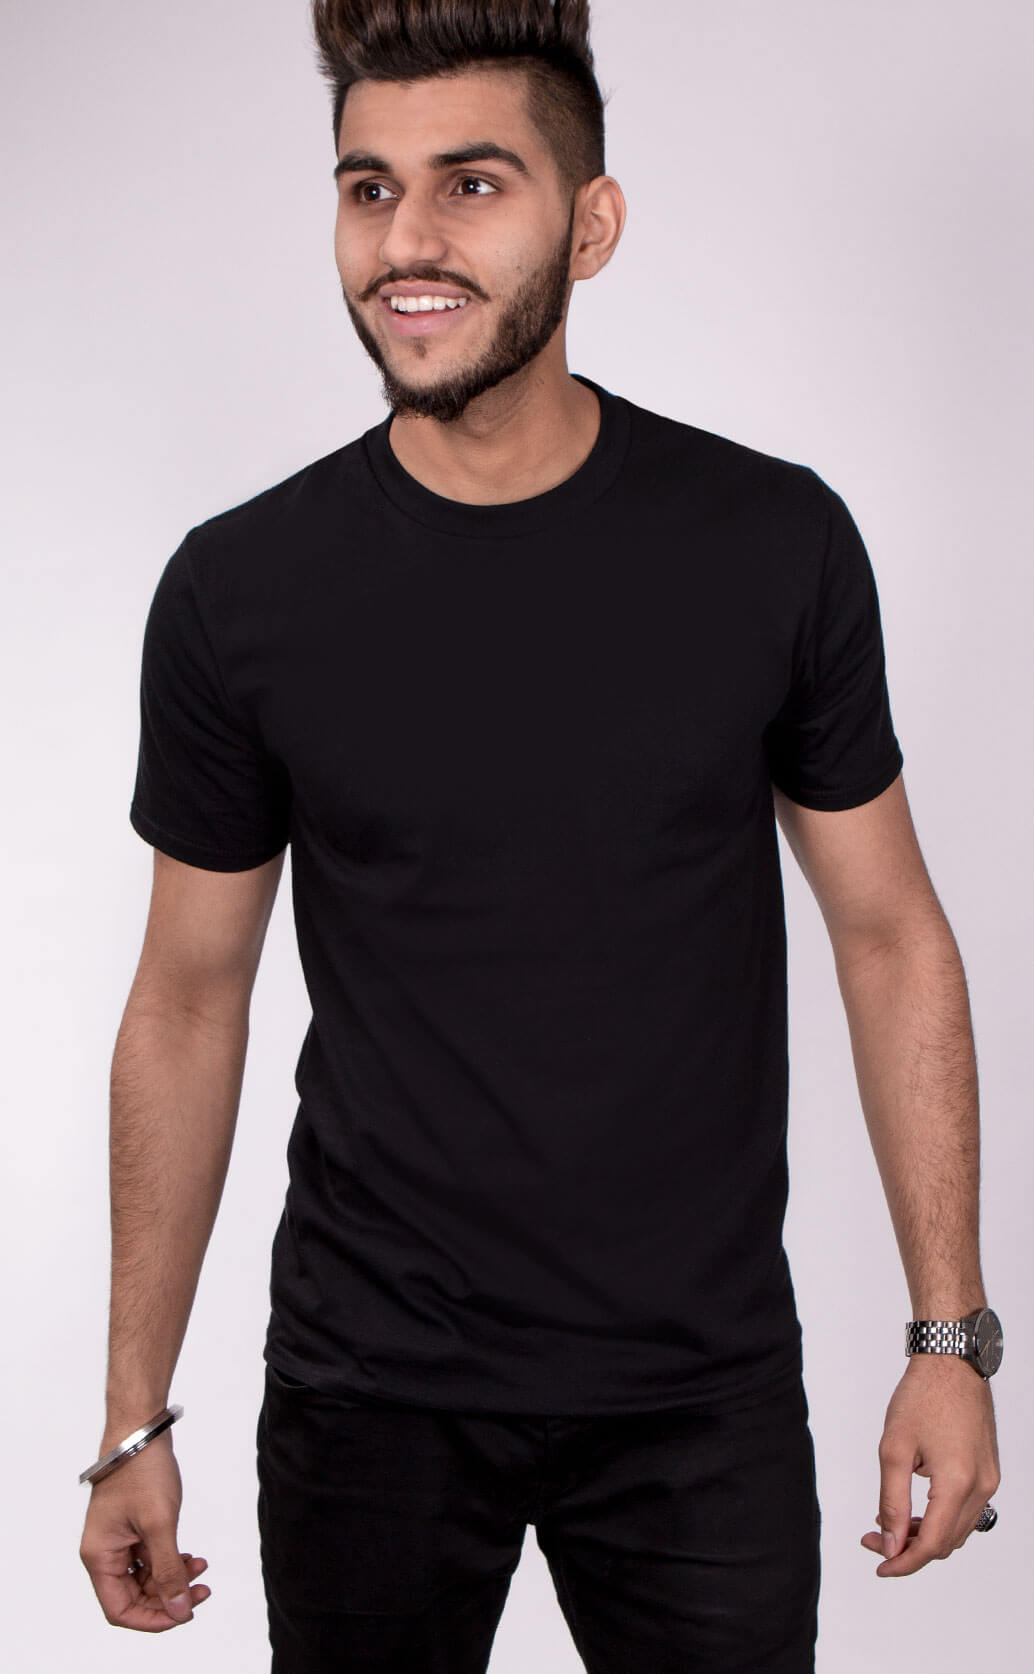 Size guide image for Mens Casual shirt type. Model is dressed in black